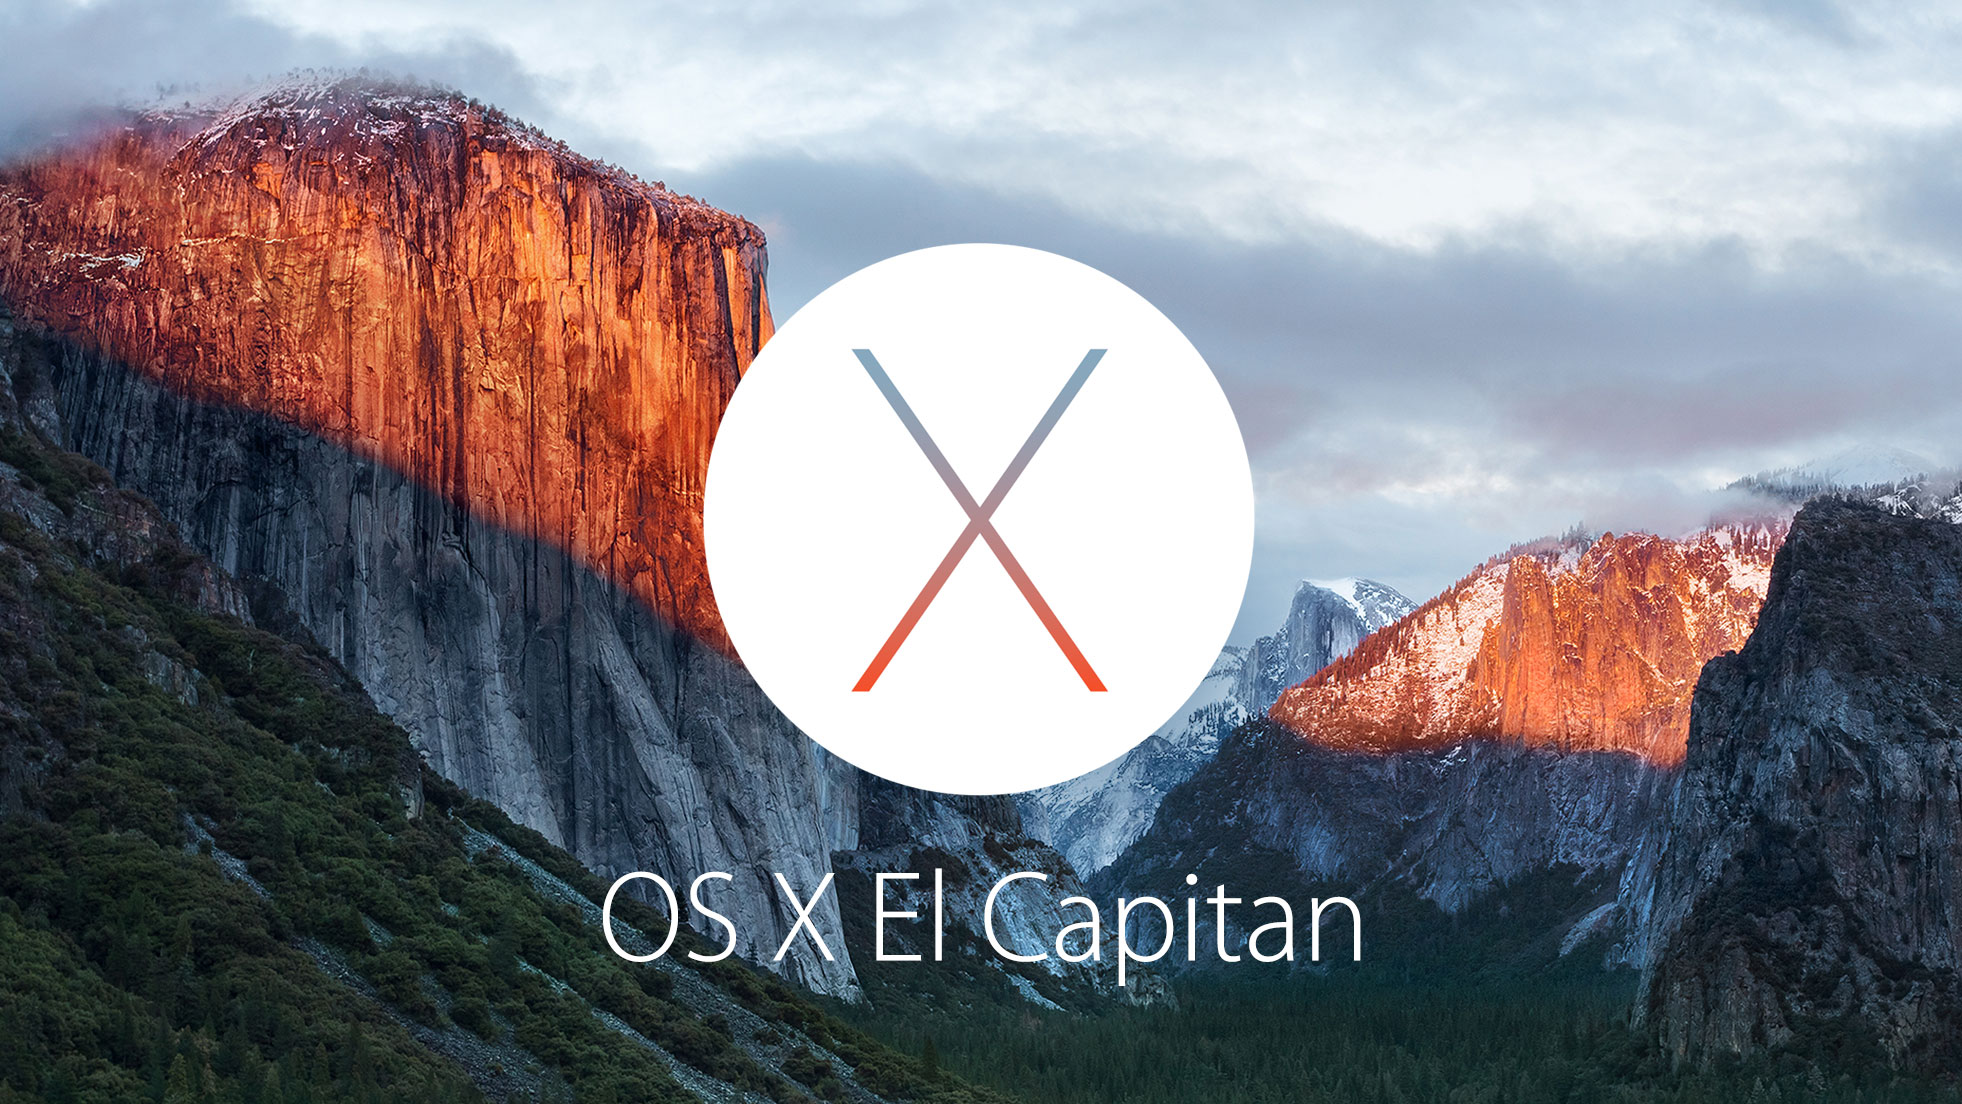 osx el captain